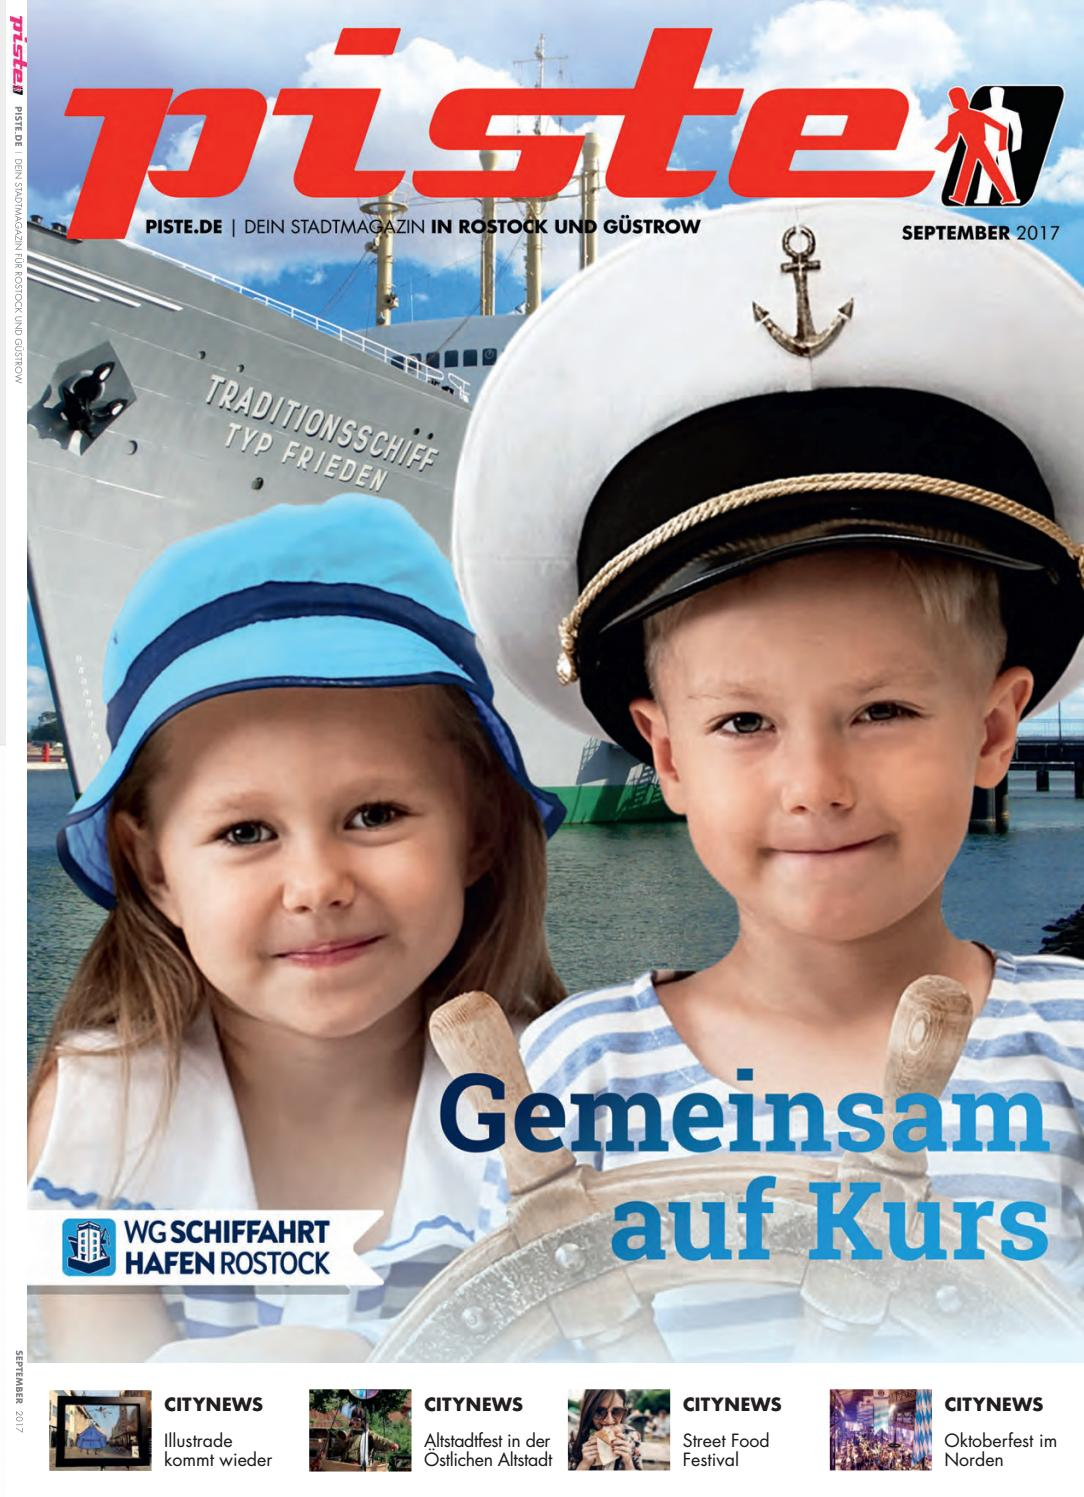 piste rostock ausgabe september 2017humburg media group